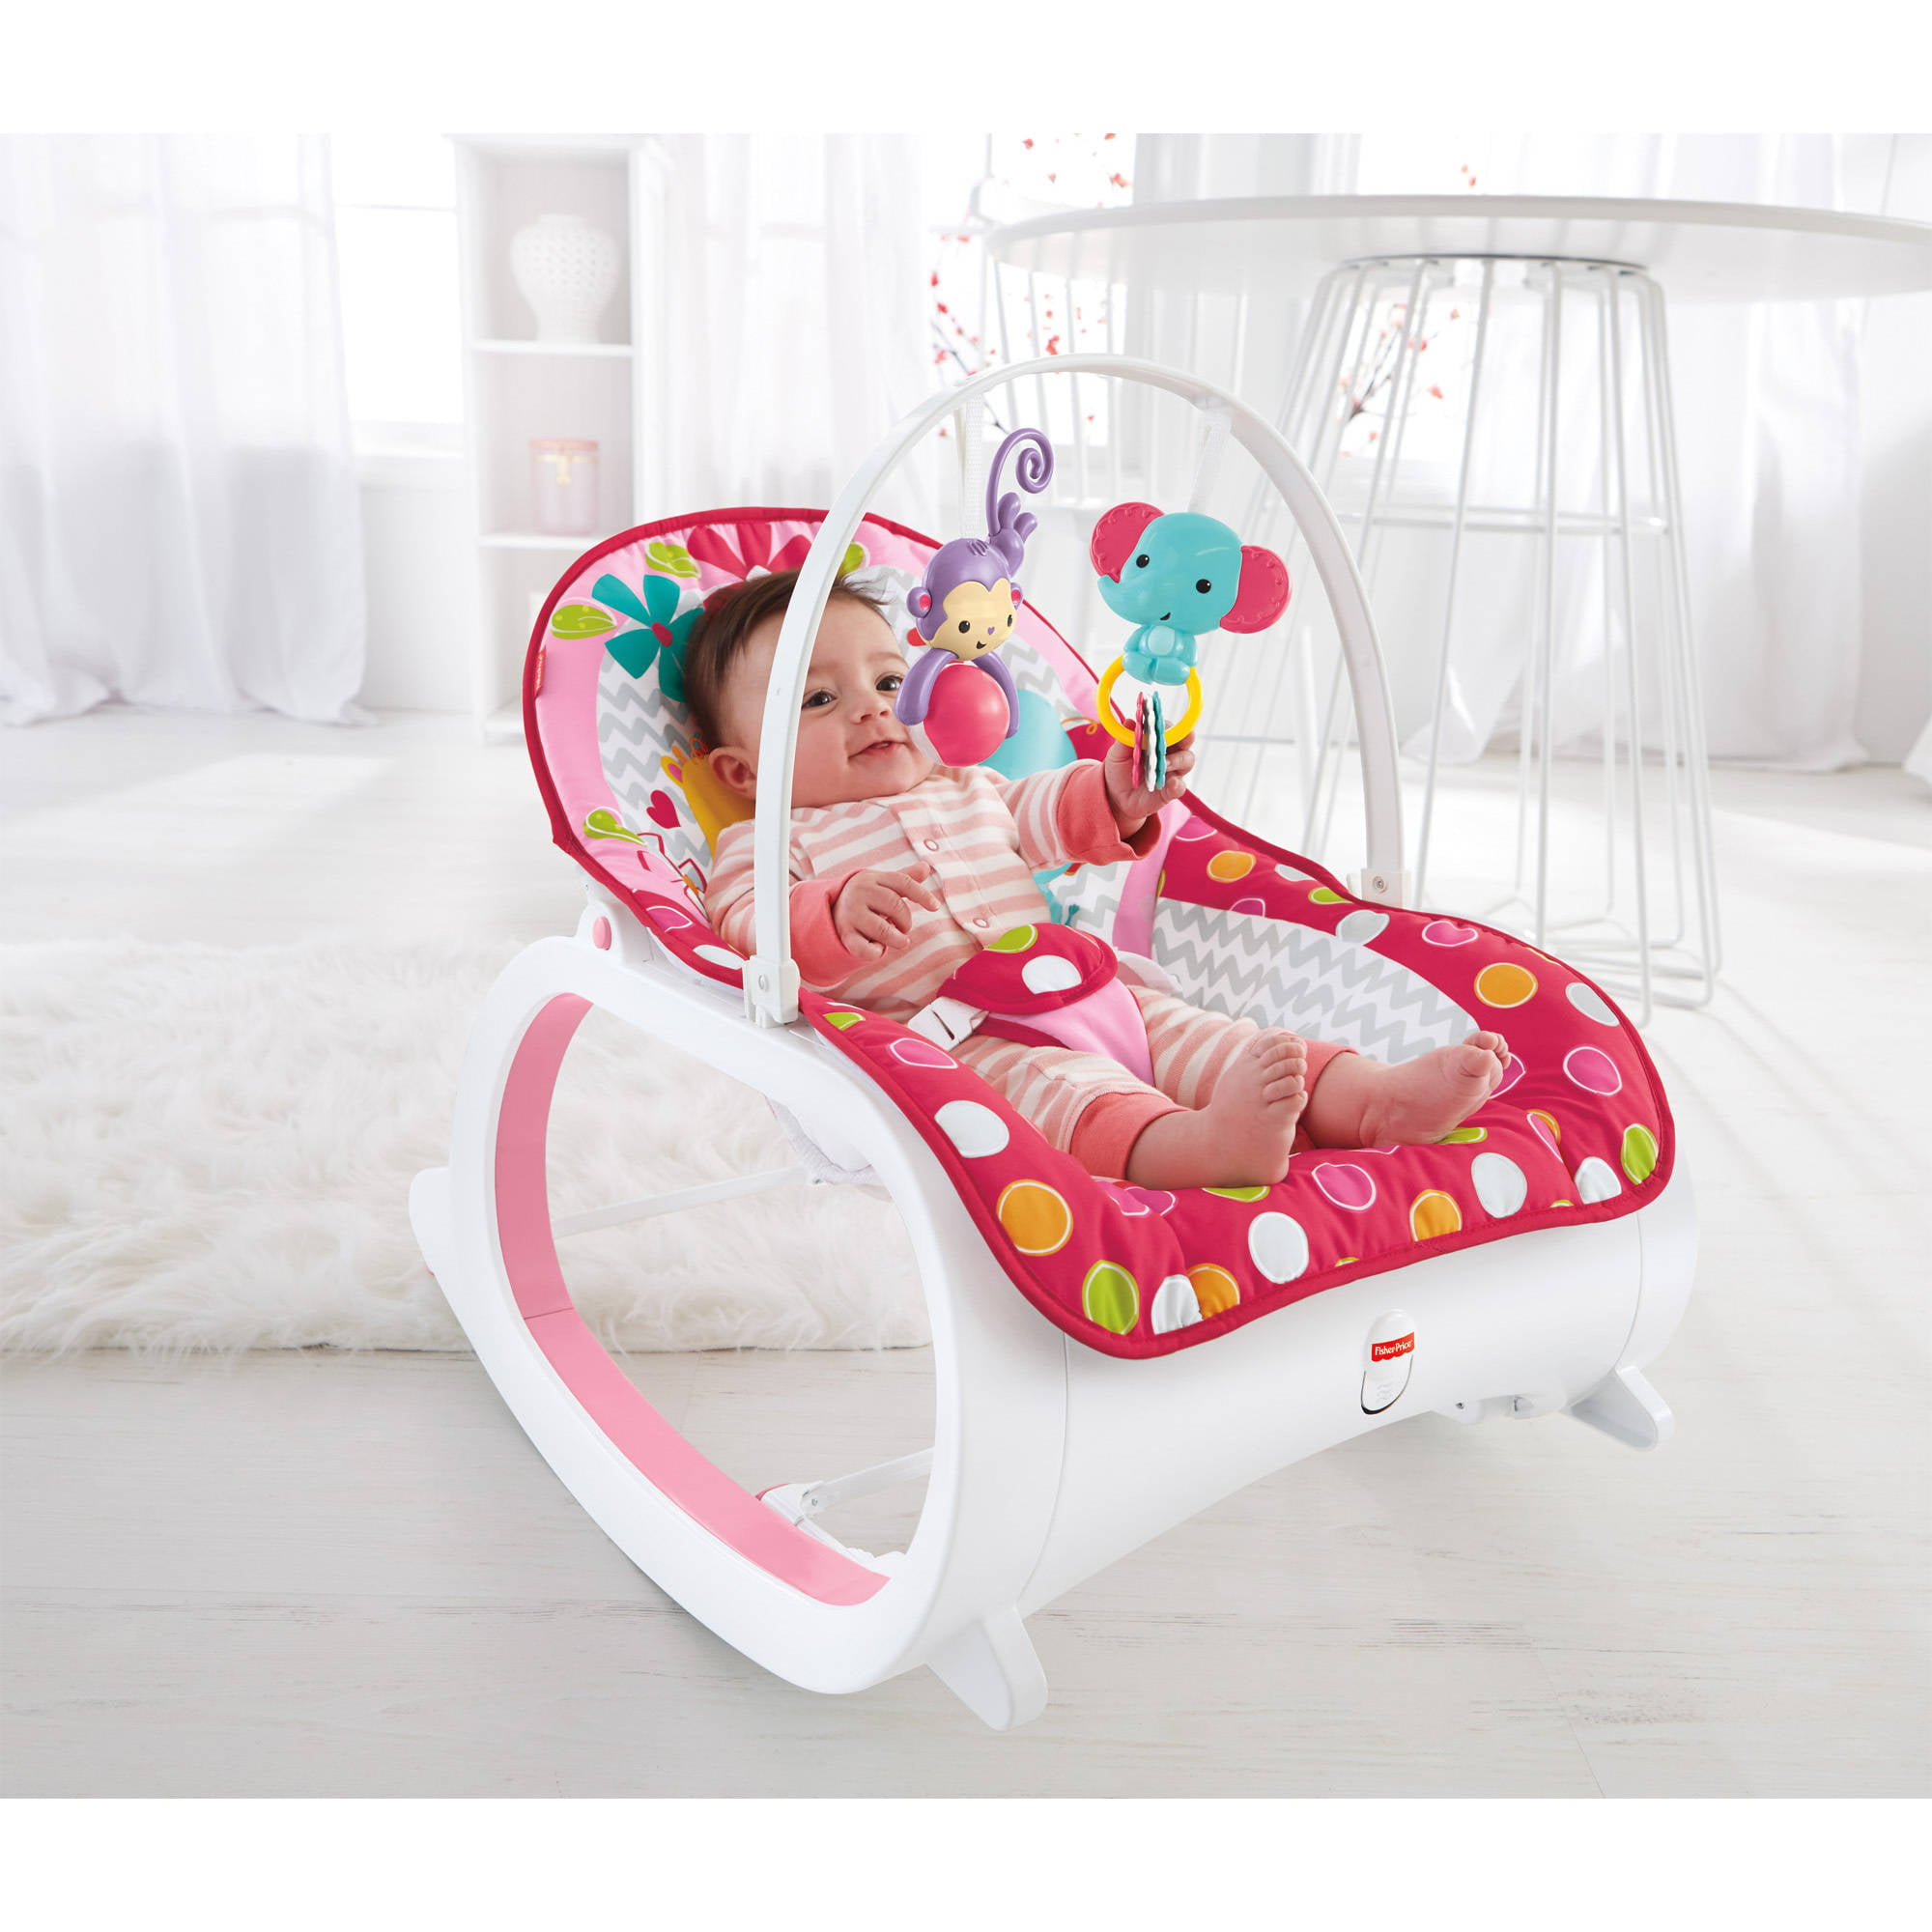 8ae3196f7 Fisher-Price Infant-To-Toddler Rocker - Walmart.com